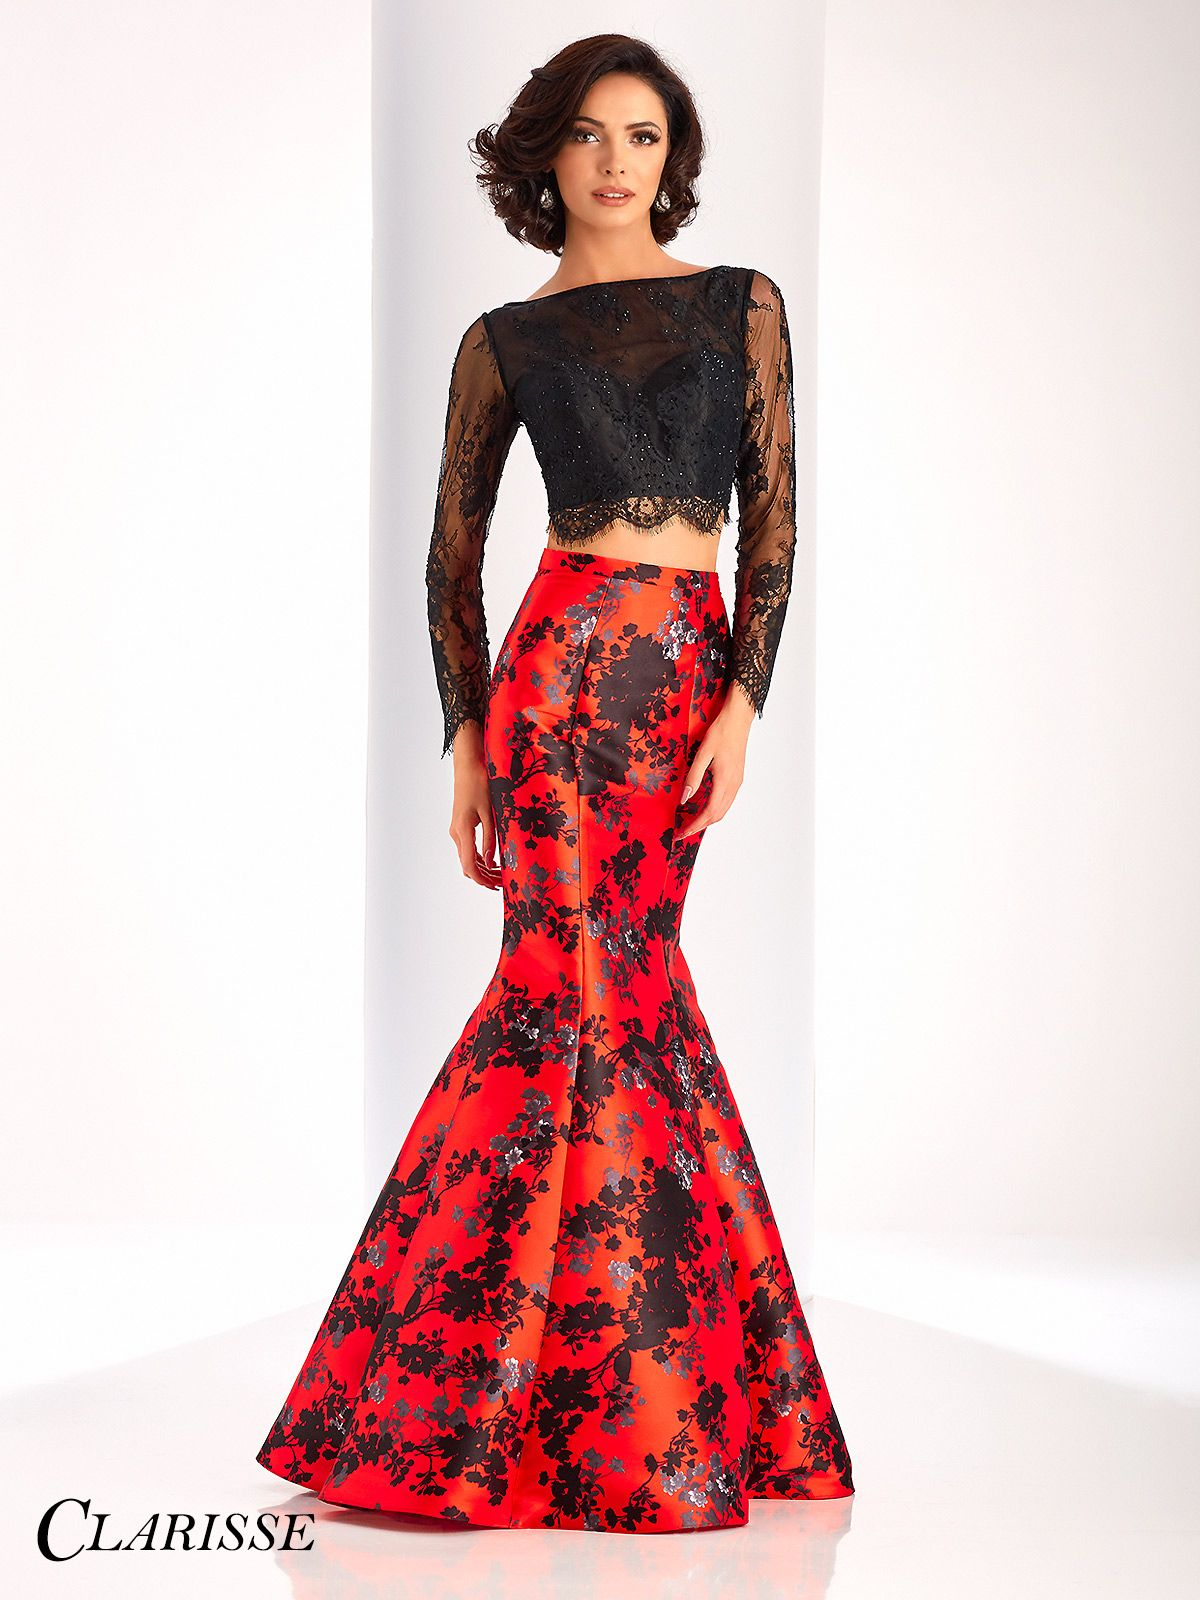 26a3c659b57 Clarisse Mermaid Two Piece Prom Dress 4808. Unique black and red floral long  sleeve 2017